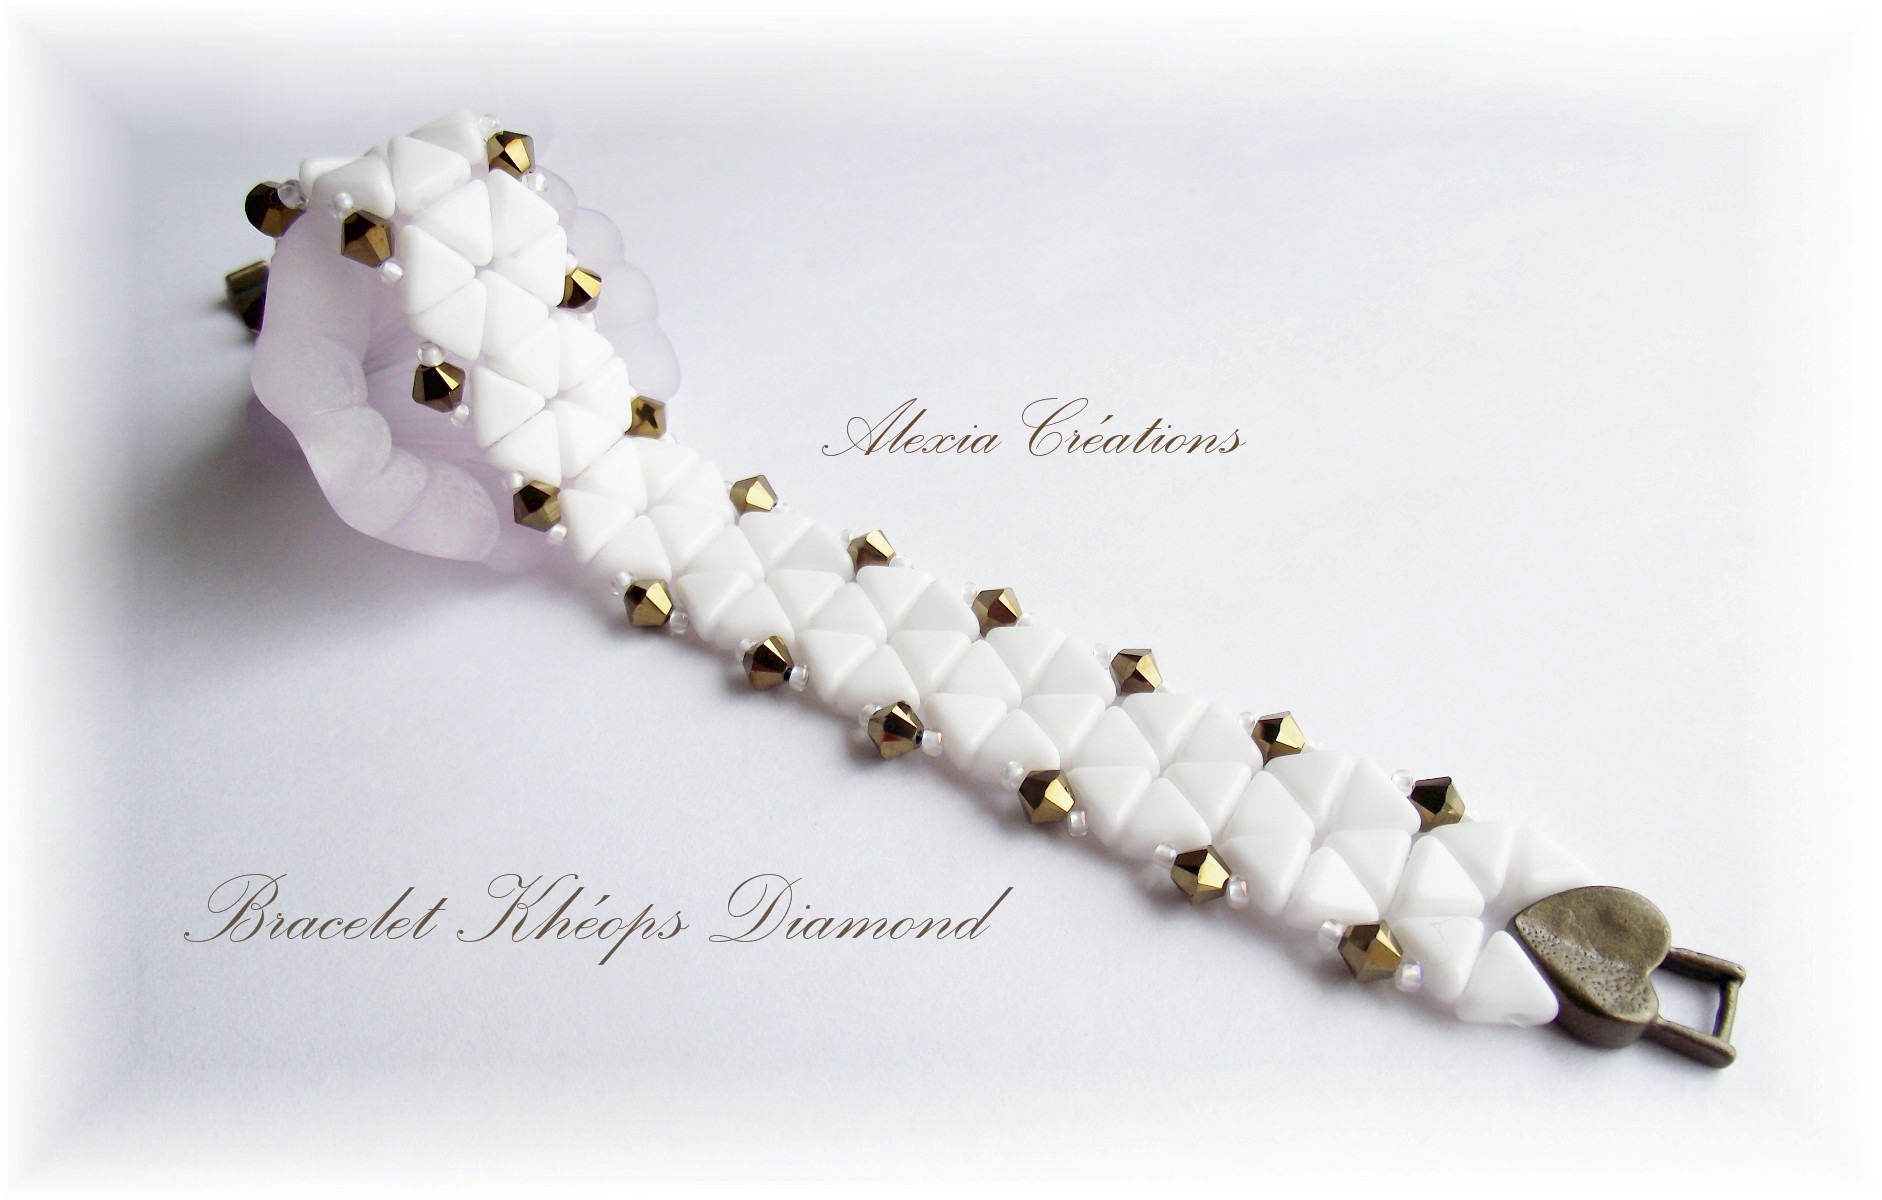 Bracelet Kheops Diamond